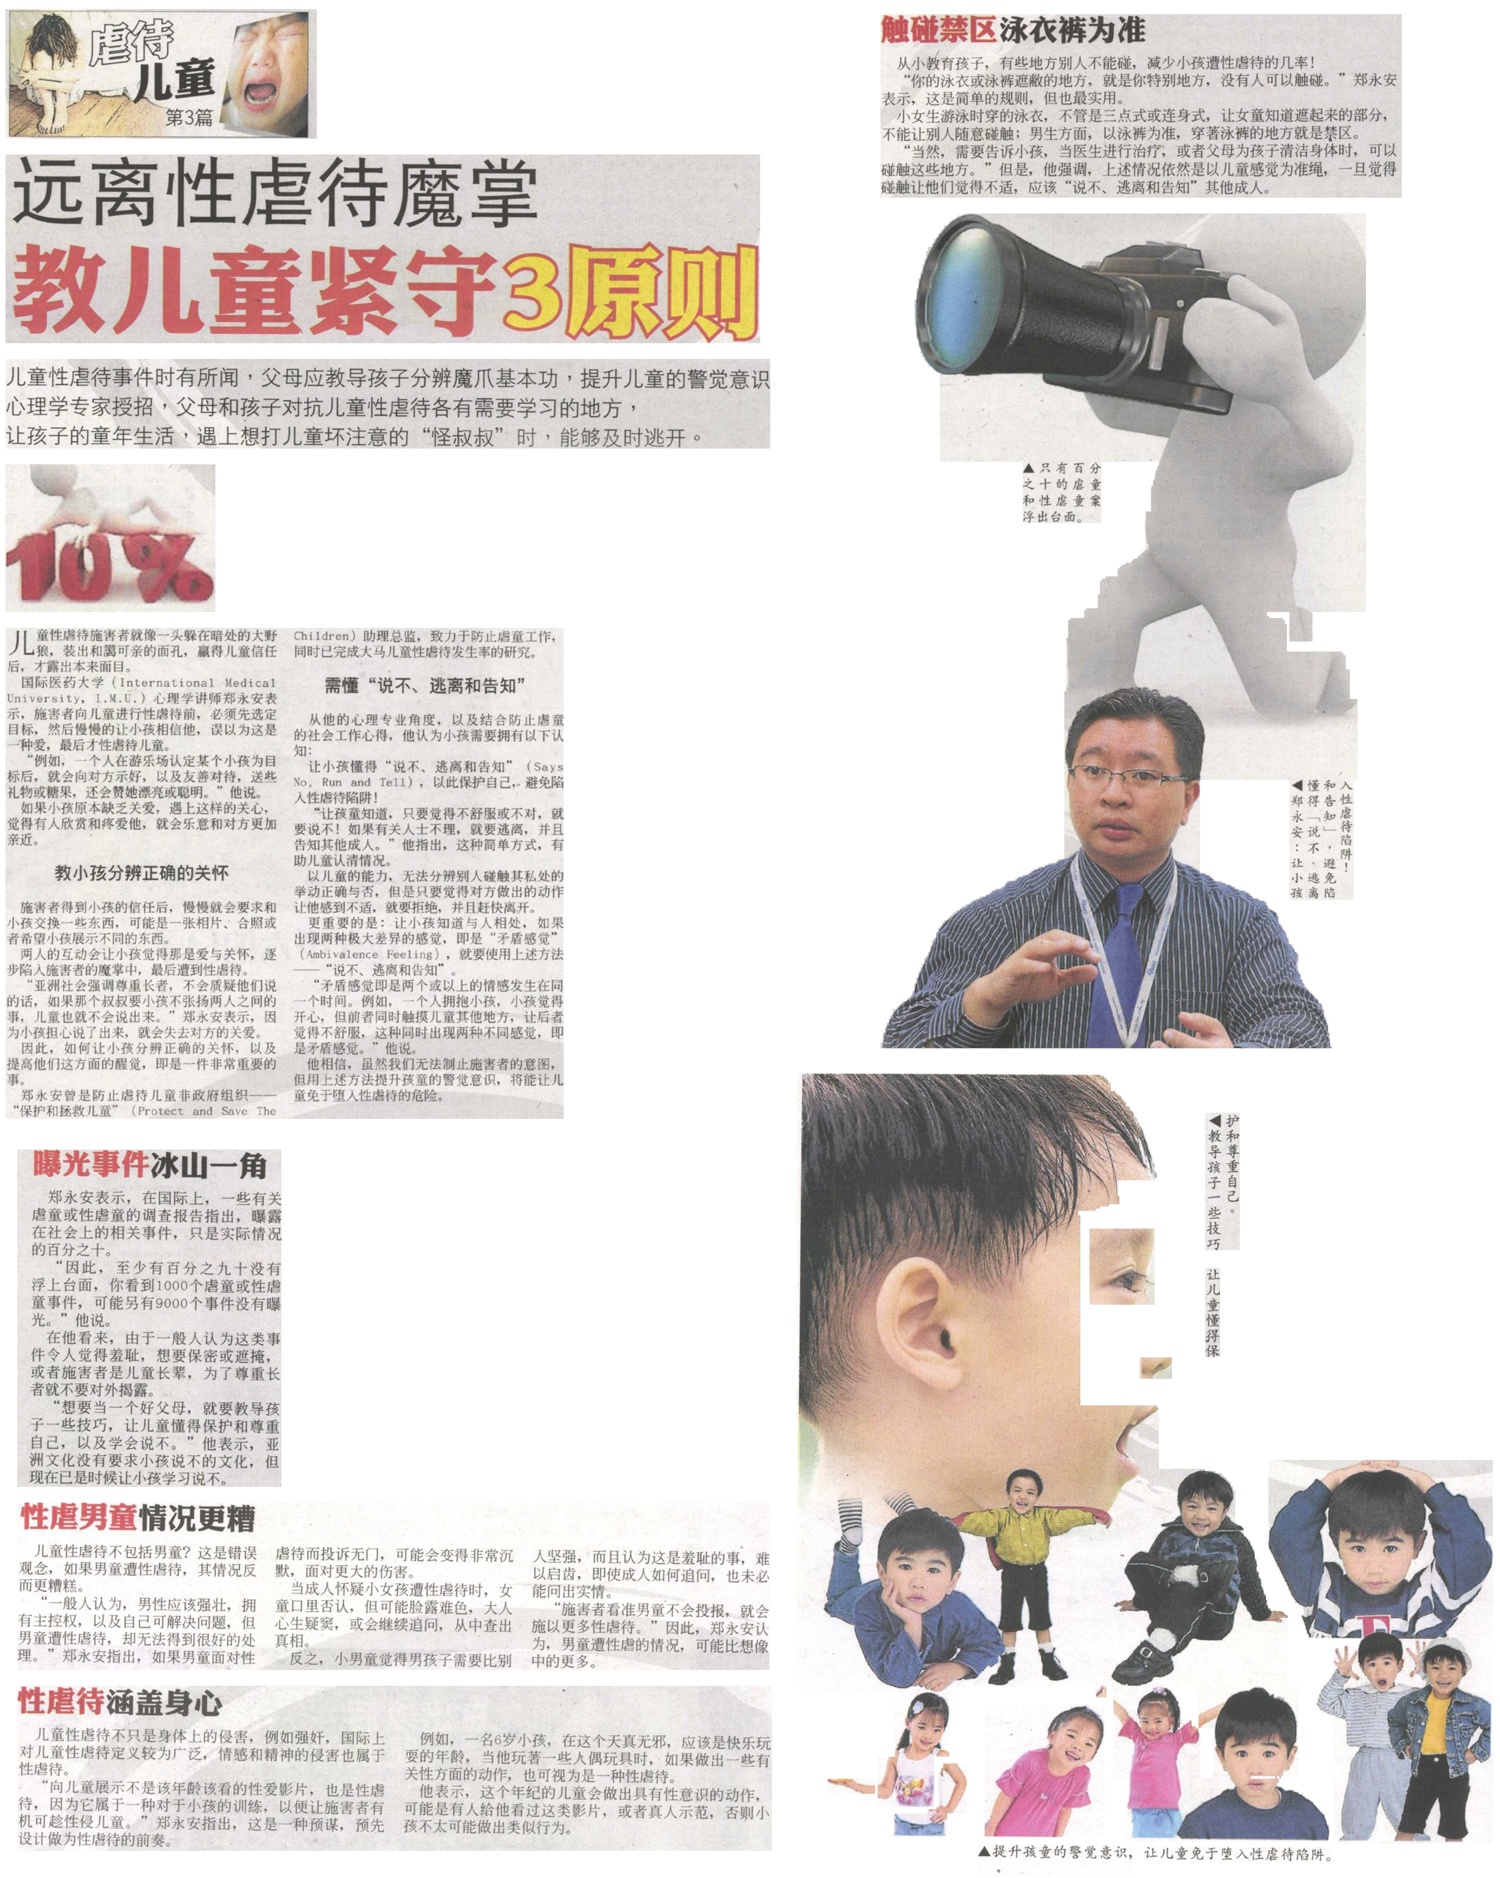 a report on the child abuse in china The number of reported incidents of child abuse in china is increasing at a worrying pace in the latest incident, in fangshan district, beijing, some parents informed the police on tuesday that their kids had been pricked with needles at a local kindergarten three teachers are being questioned by.